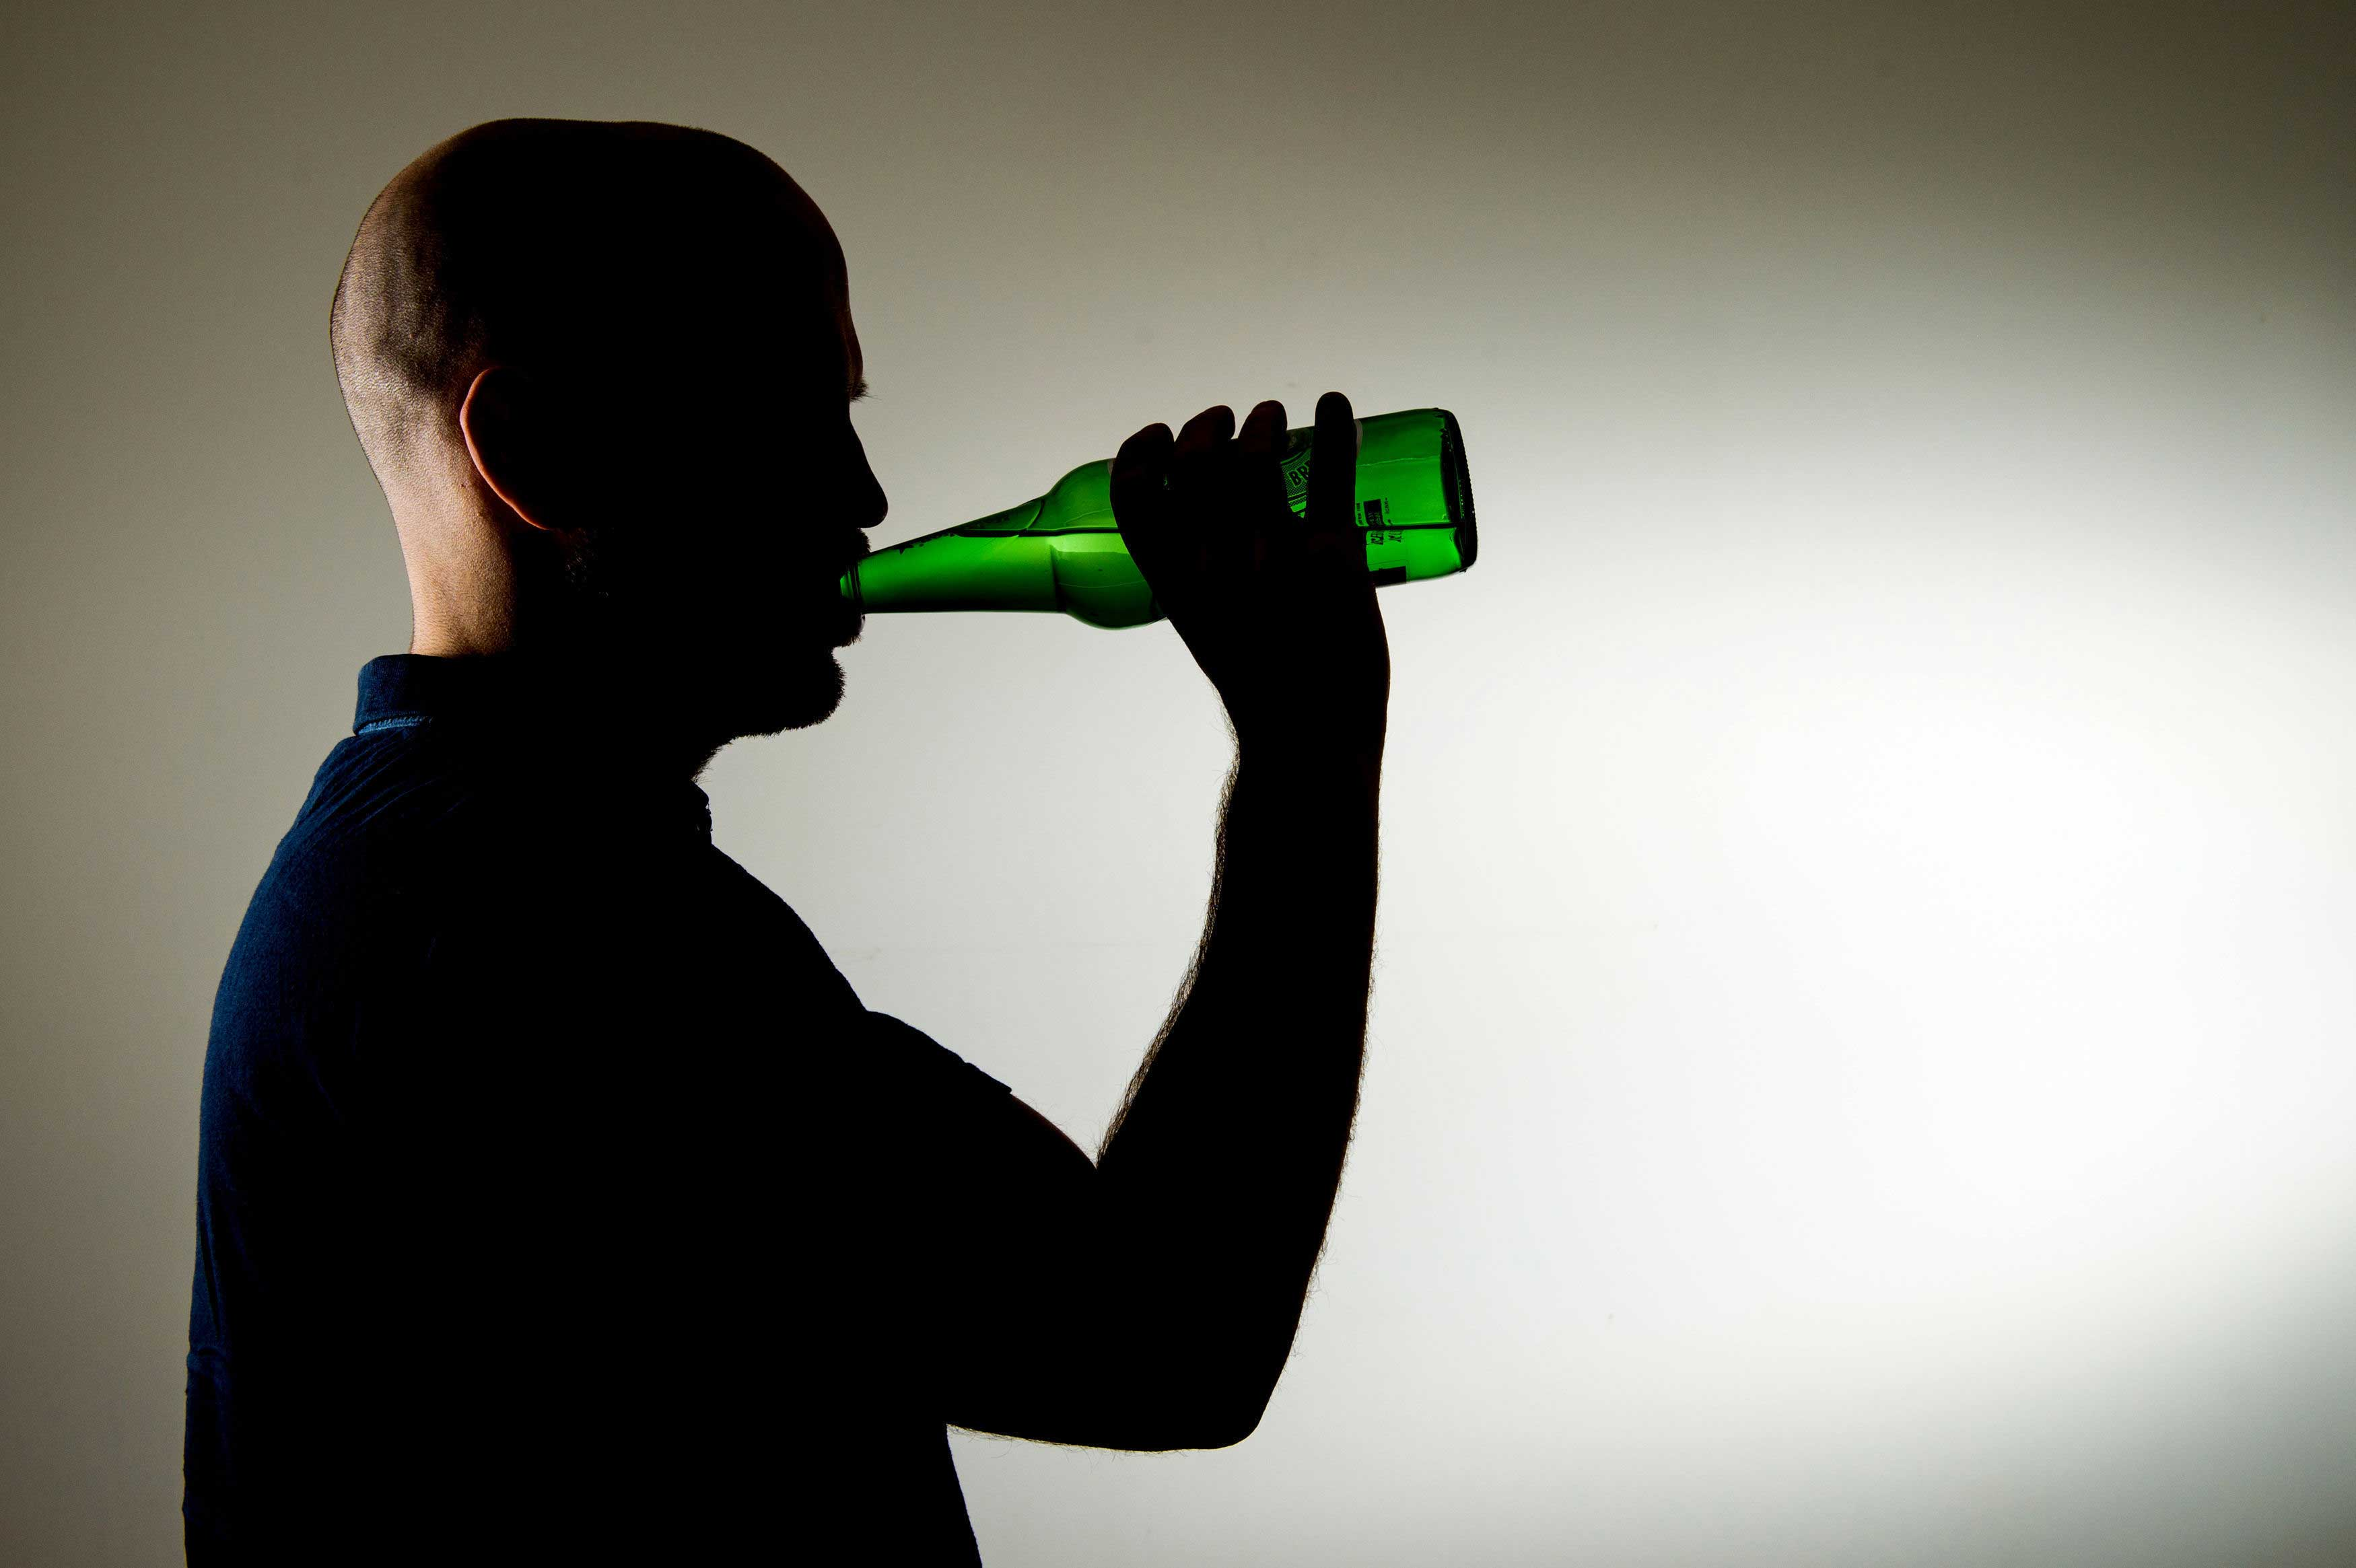 Alcohol guidelines in many countries may not be safe, suggests study